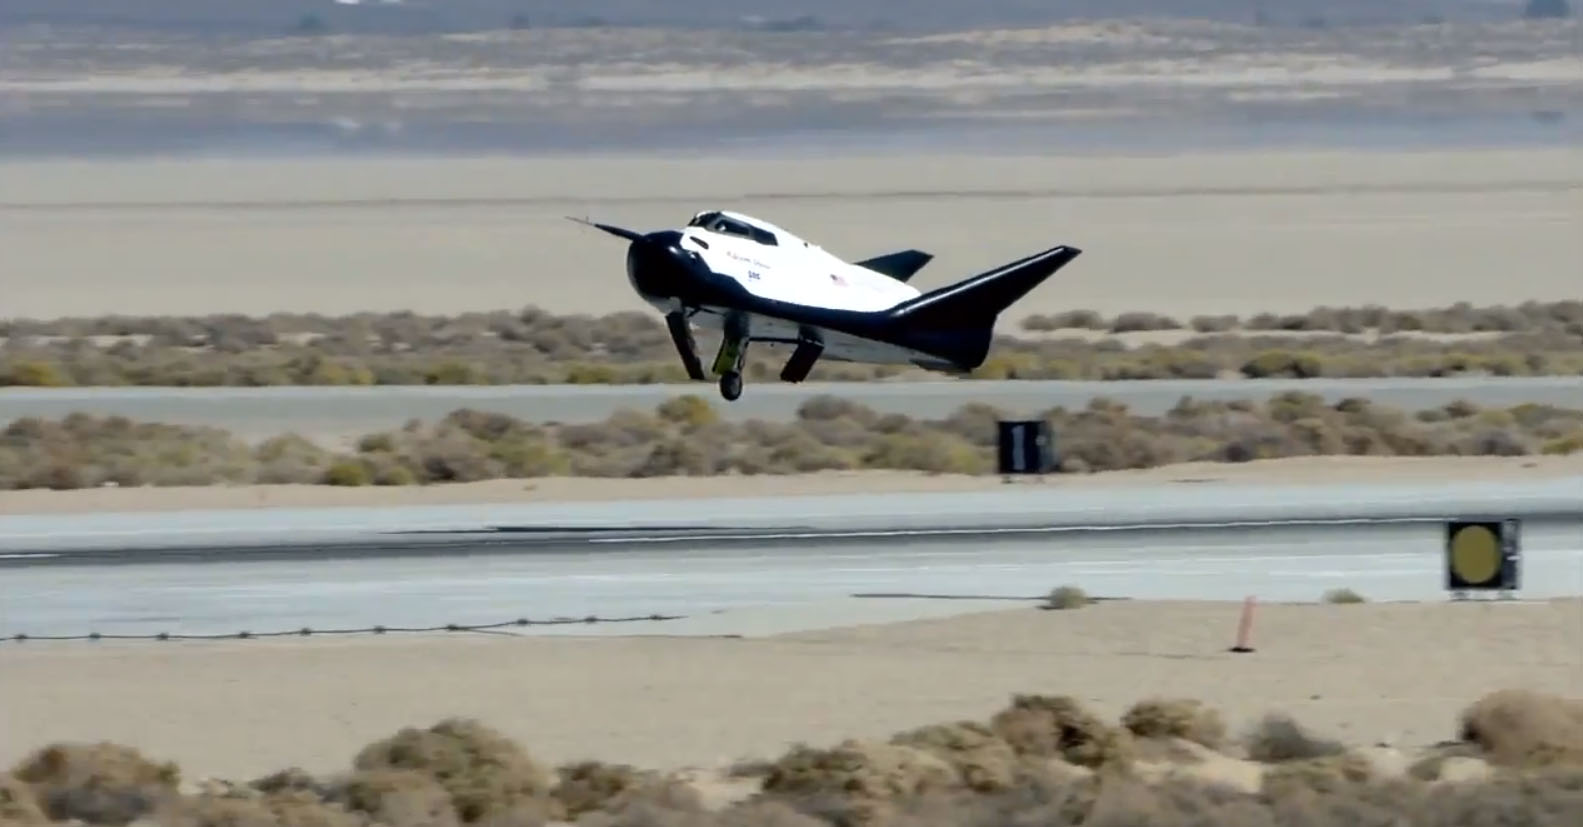 Private Dream Chaser Space Plane Builders Investigate Landing Gear Malfunction